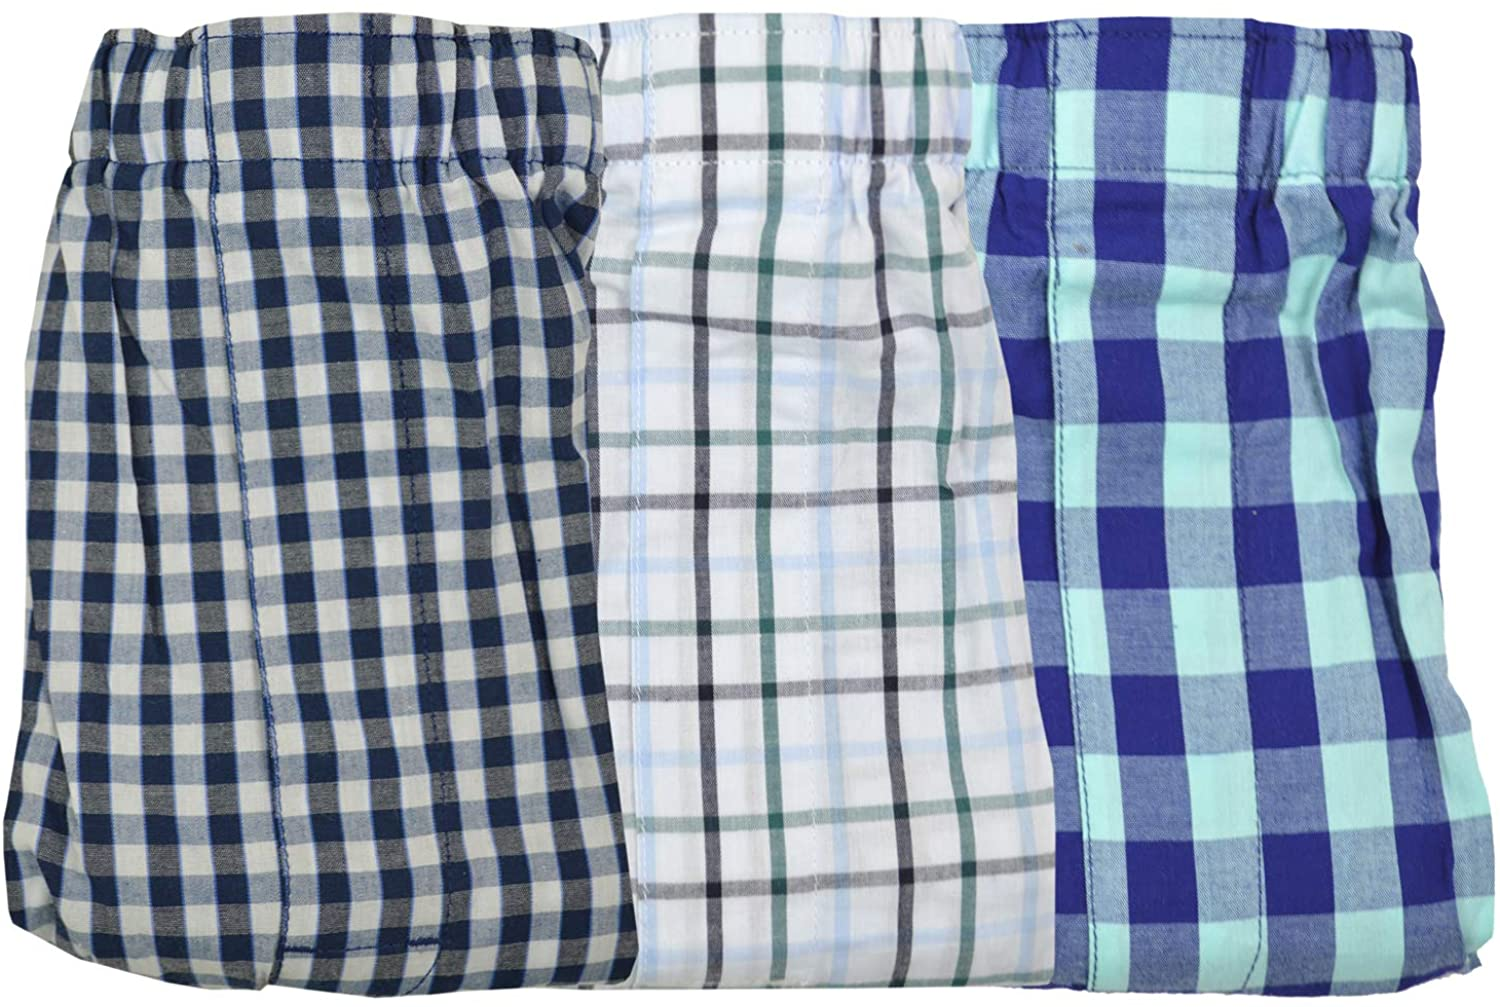 Banana Republic Mens 100% Cotton Elastic Waistband 3 Pack Boxers Blue Gingham Plaid Light Blue